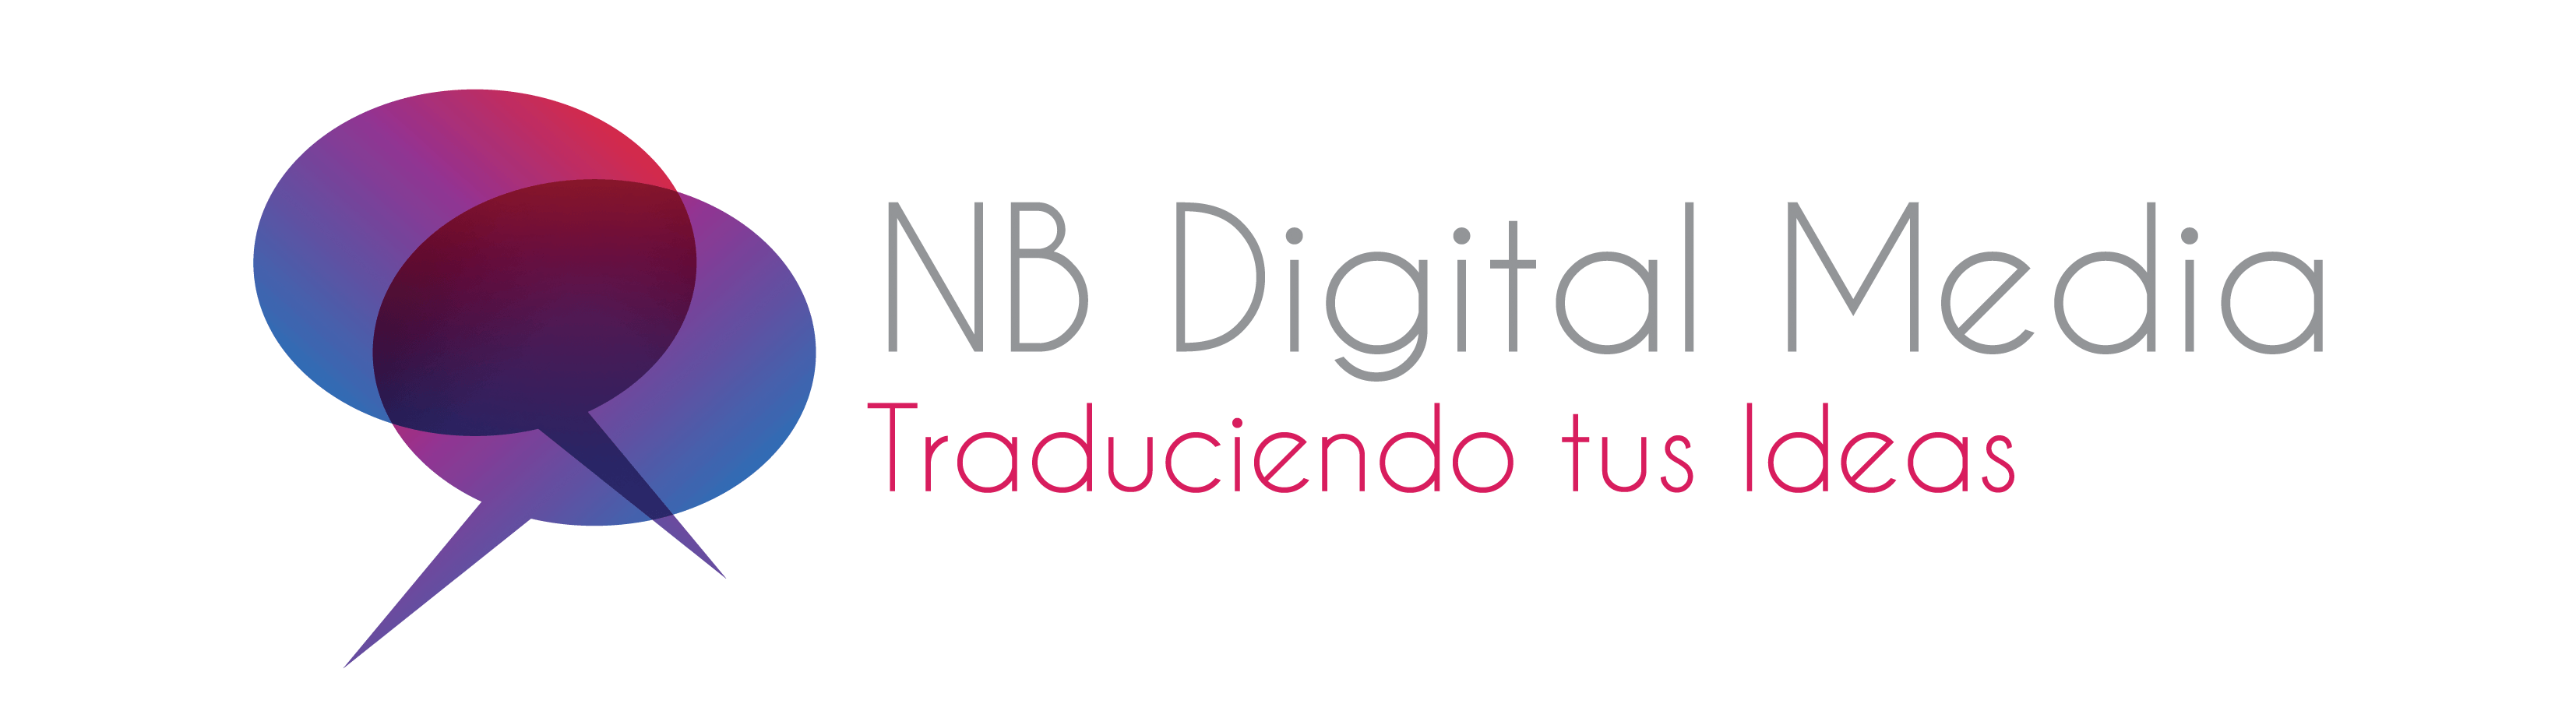 NB Digital Media